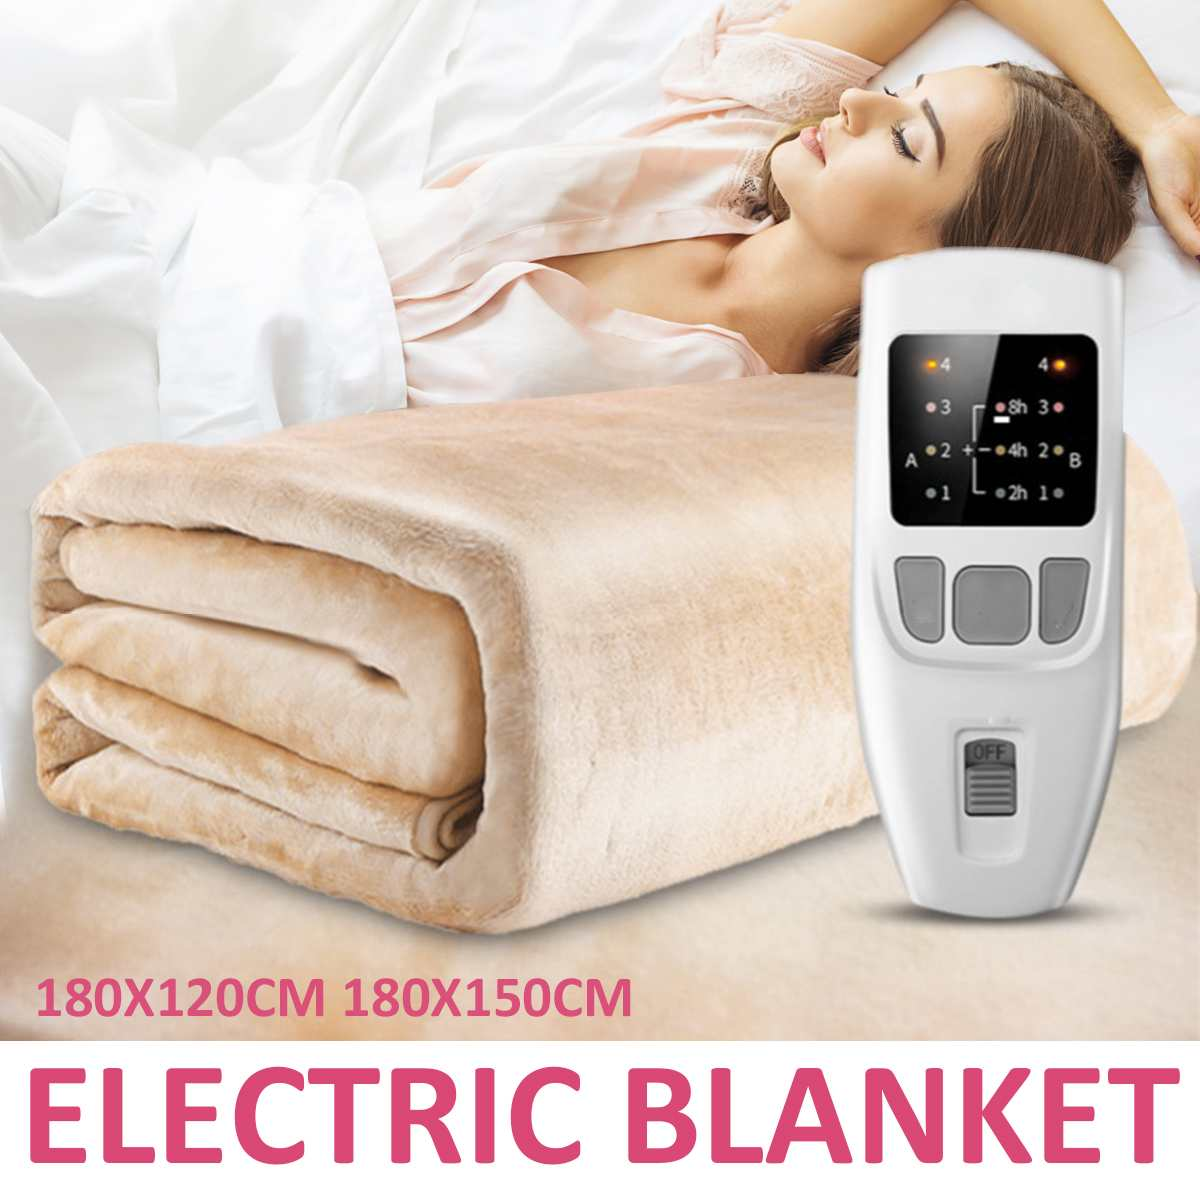 Household Security Electric Blanket Dual Heating Body Warmer Adjustable Controller Bed Heater Pad Winter Heated Mattress CarpetHousehold Security Electric Blanket Dual Heating Body Warmer Adjustable Controller Bed Heater Pad Winter Heated Mattress Carpet